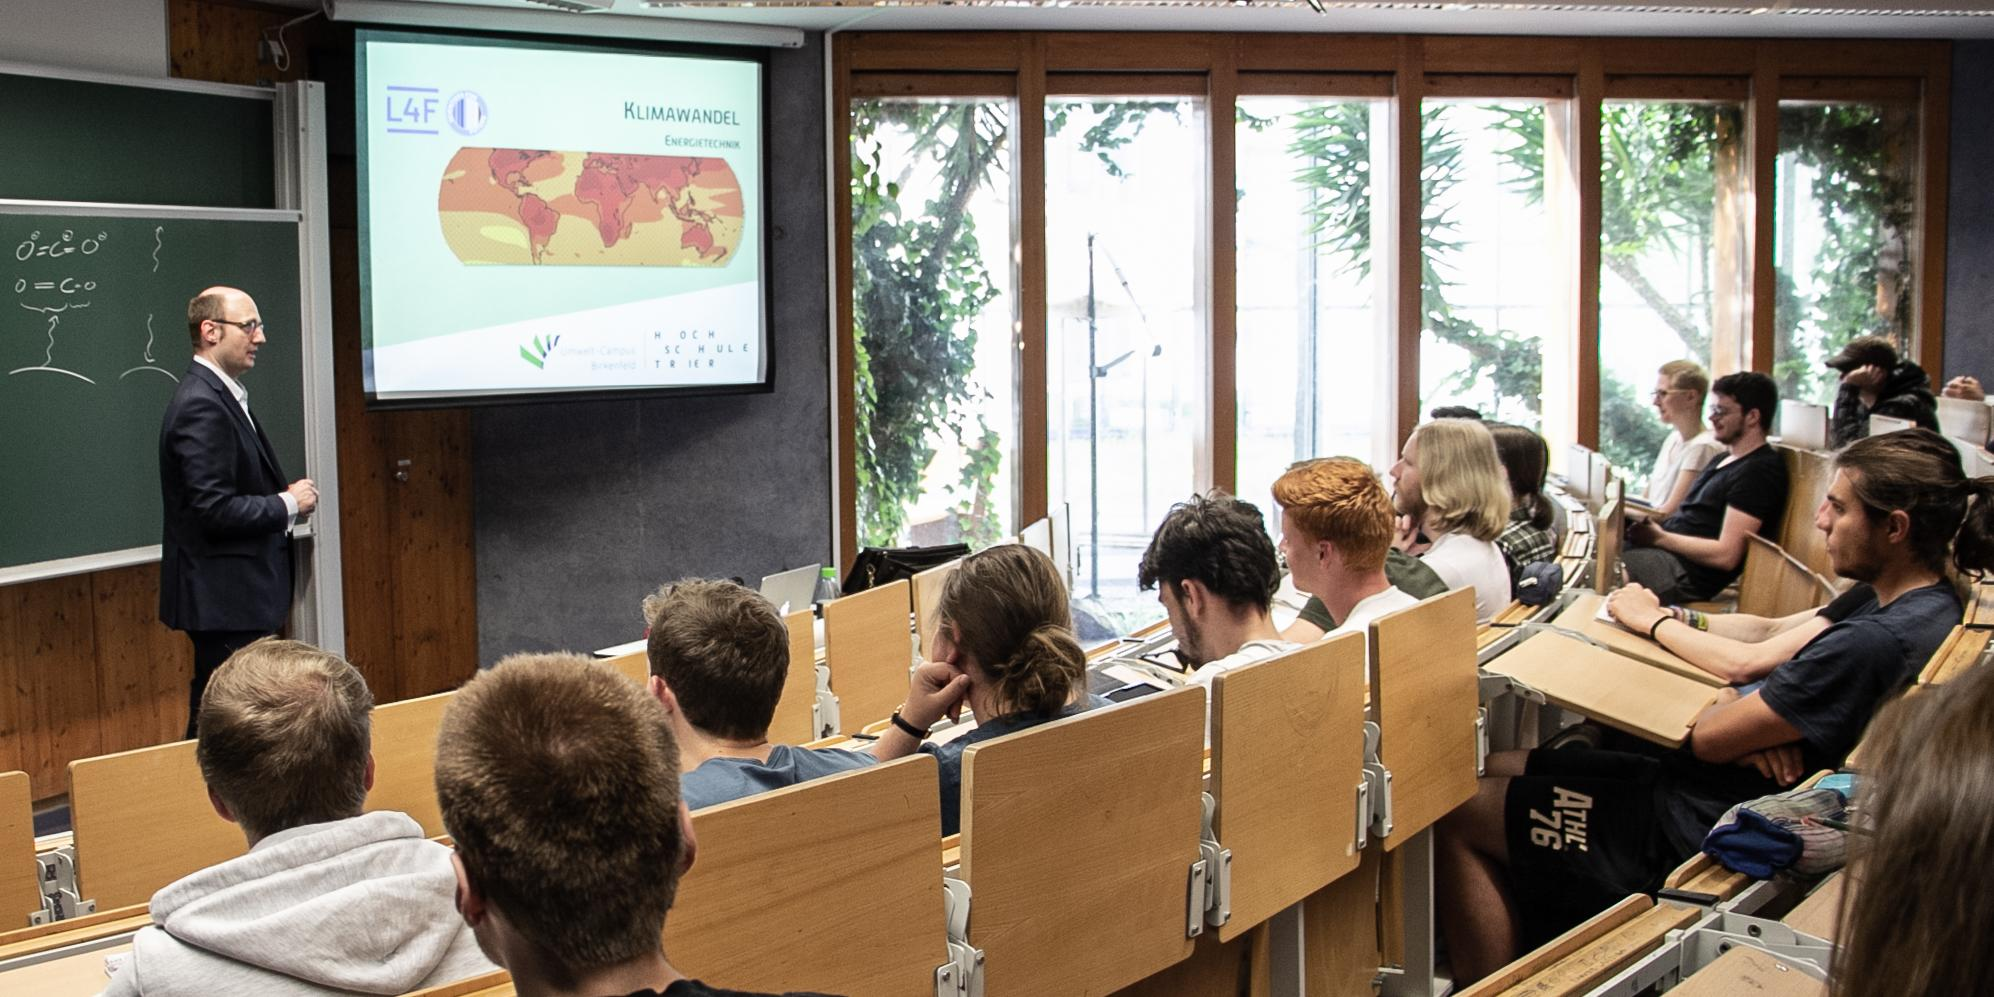 Prof. te Heesen in his lecture on climate change at #LecturesForFuture. Photo: Tanja Loch-Horn, Umwelt-Campus Birkenfeld